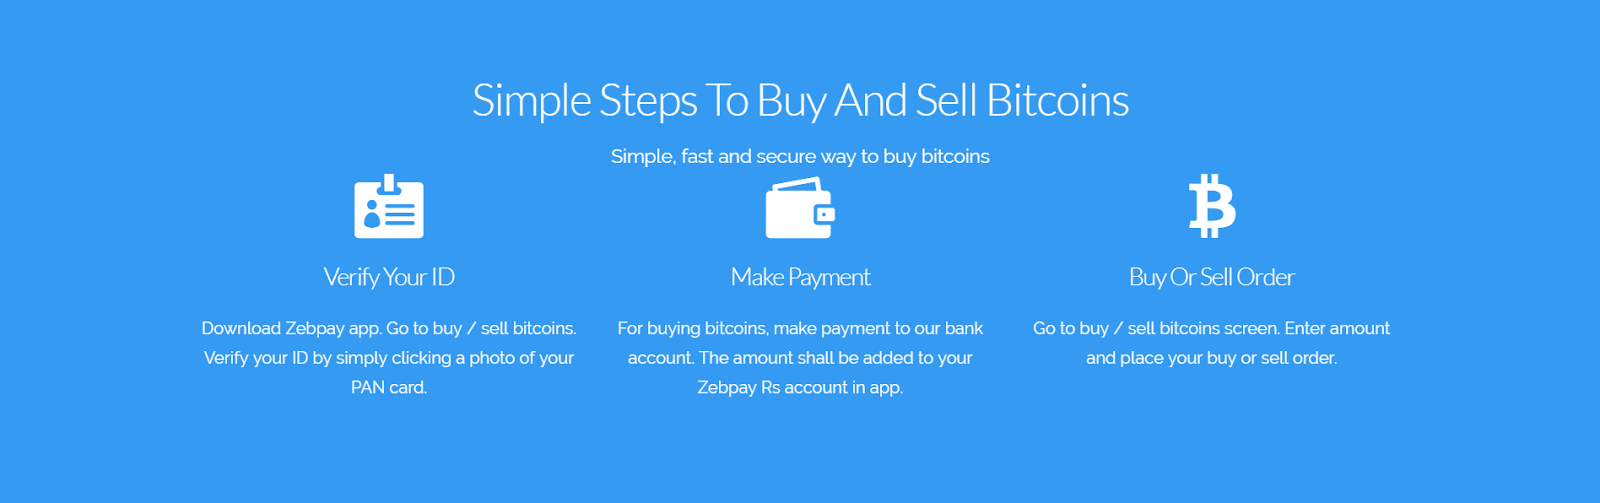 Bitcoin for beginners zebpay blog data on bitcoin valuation in the country there is a kyc requirement and you will need to verify your id by simply clicking a photo of your pan card ccuart Choice Image